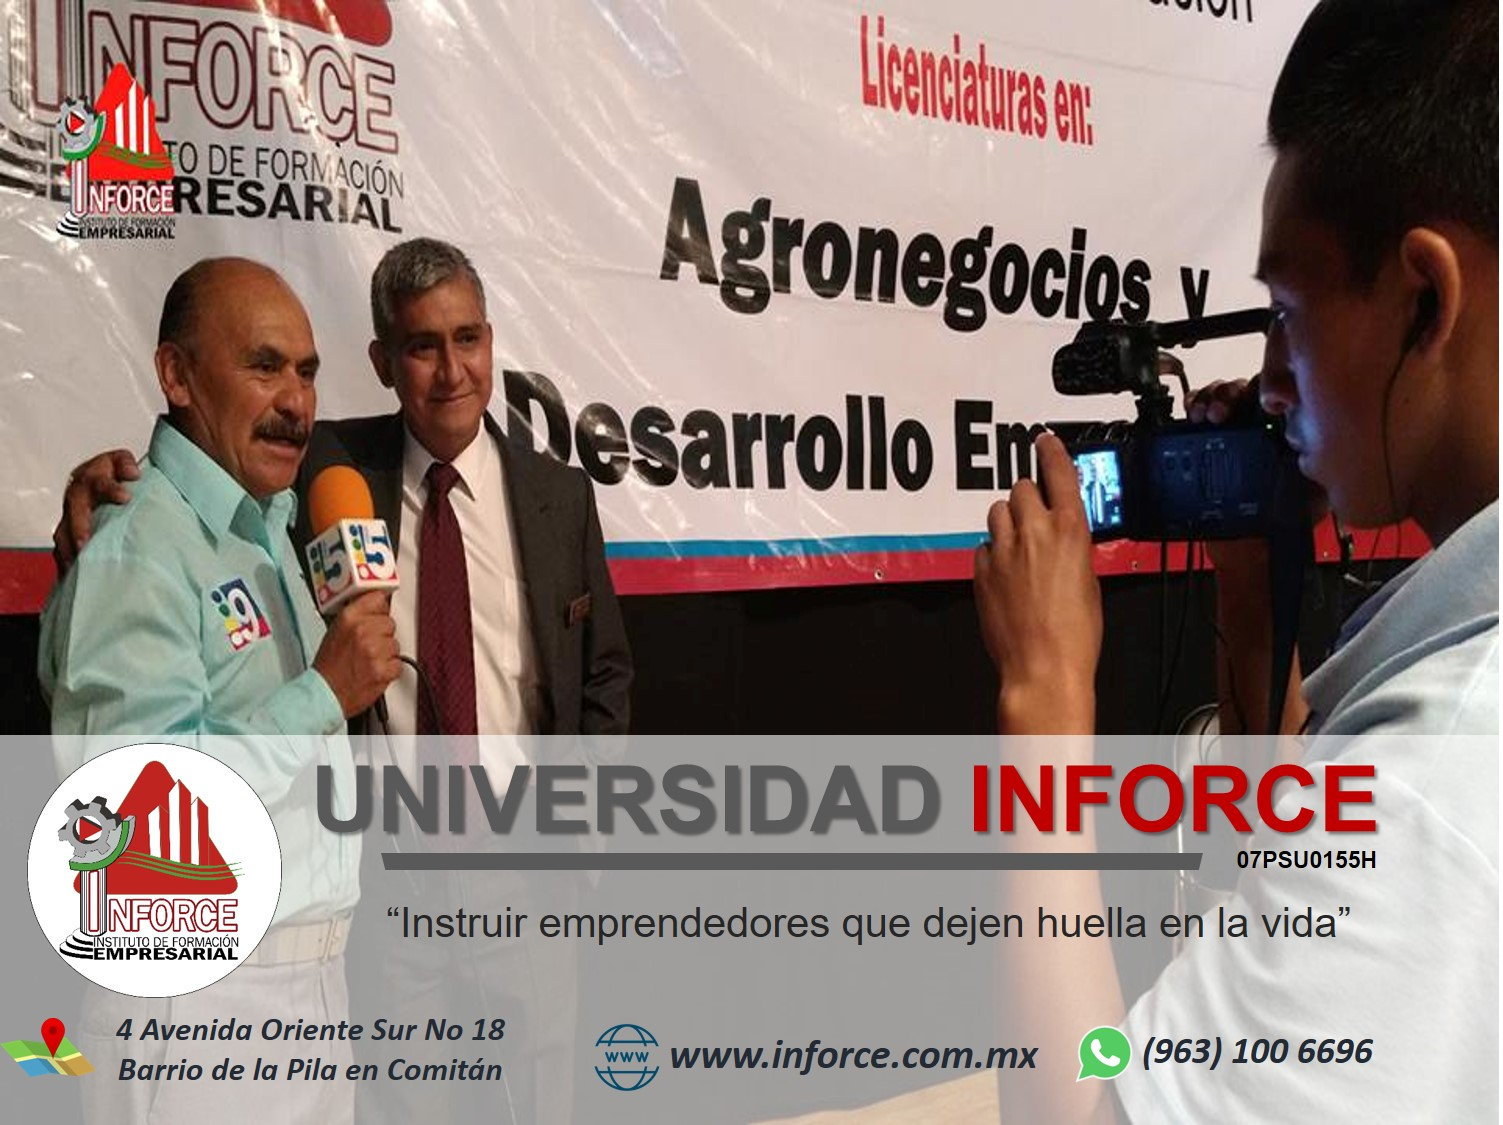 universida-inforce-comitan-instituto-de-formacion-empresarial-002.jpg